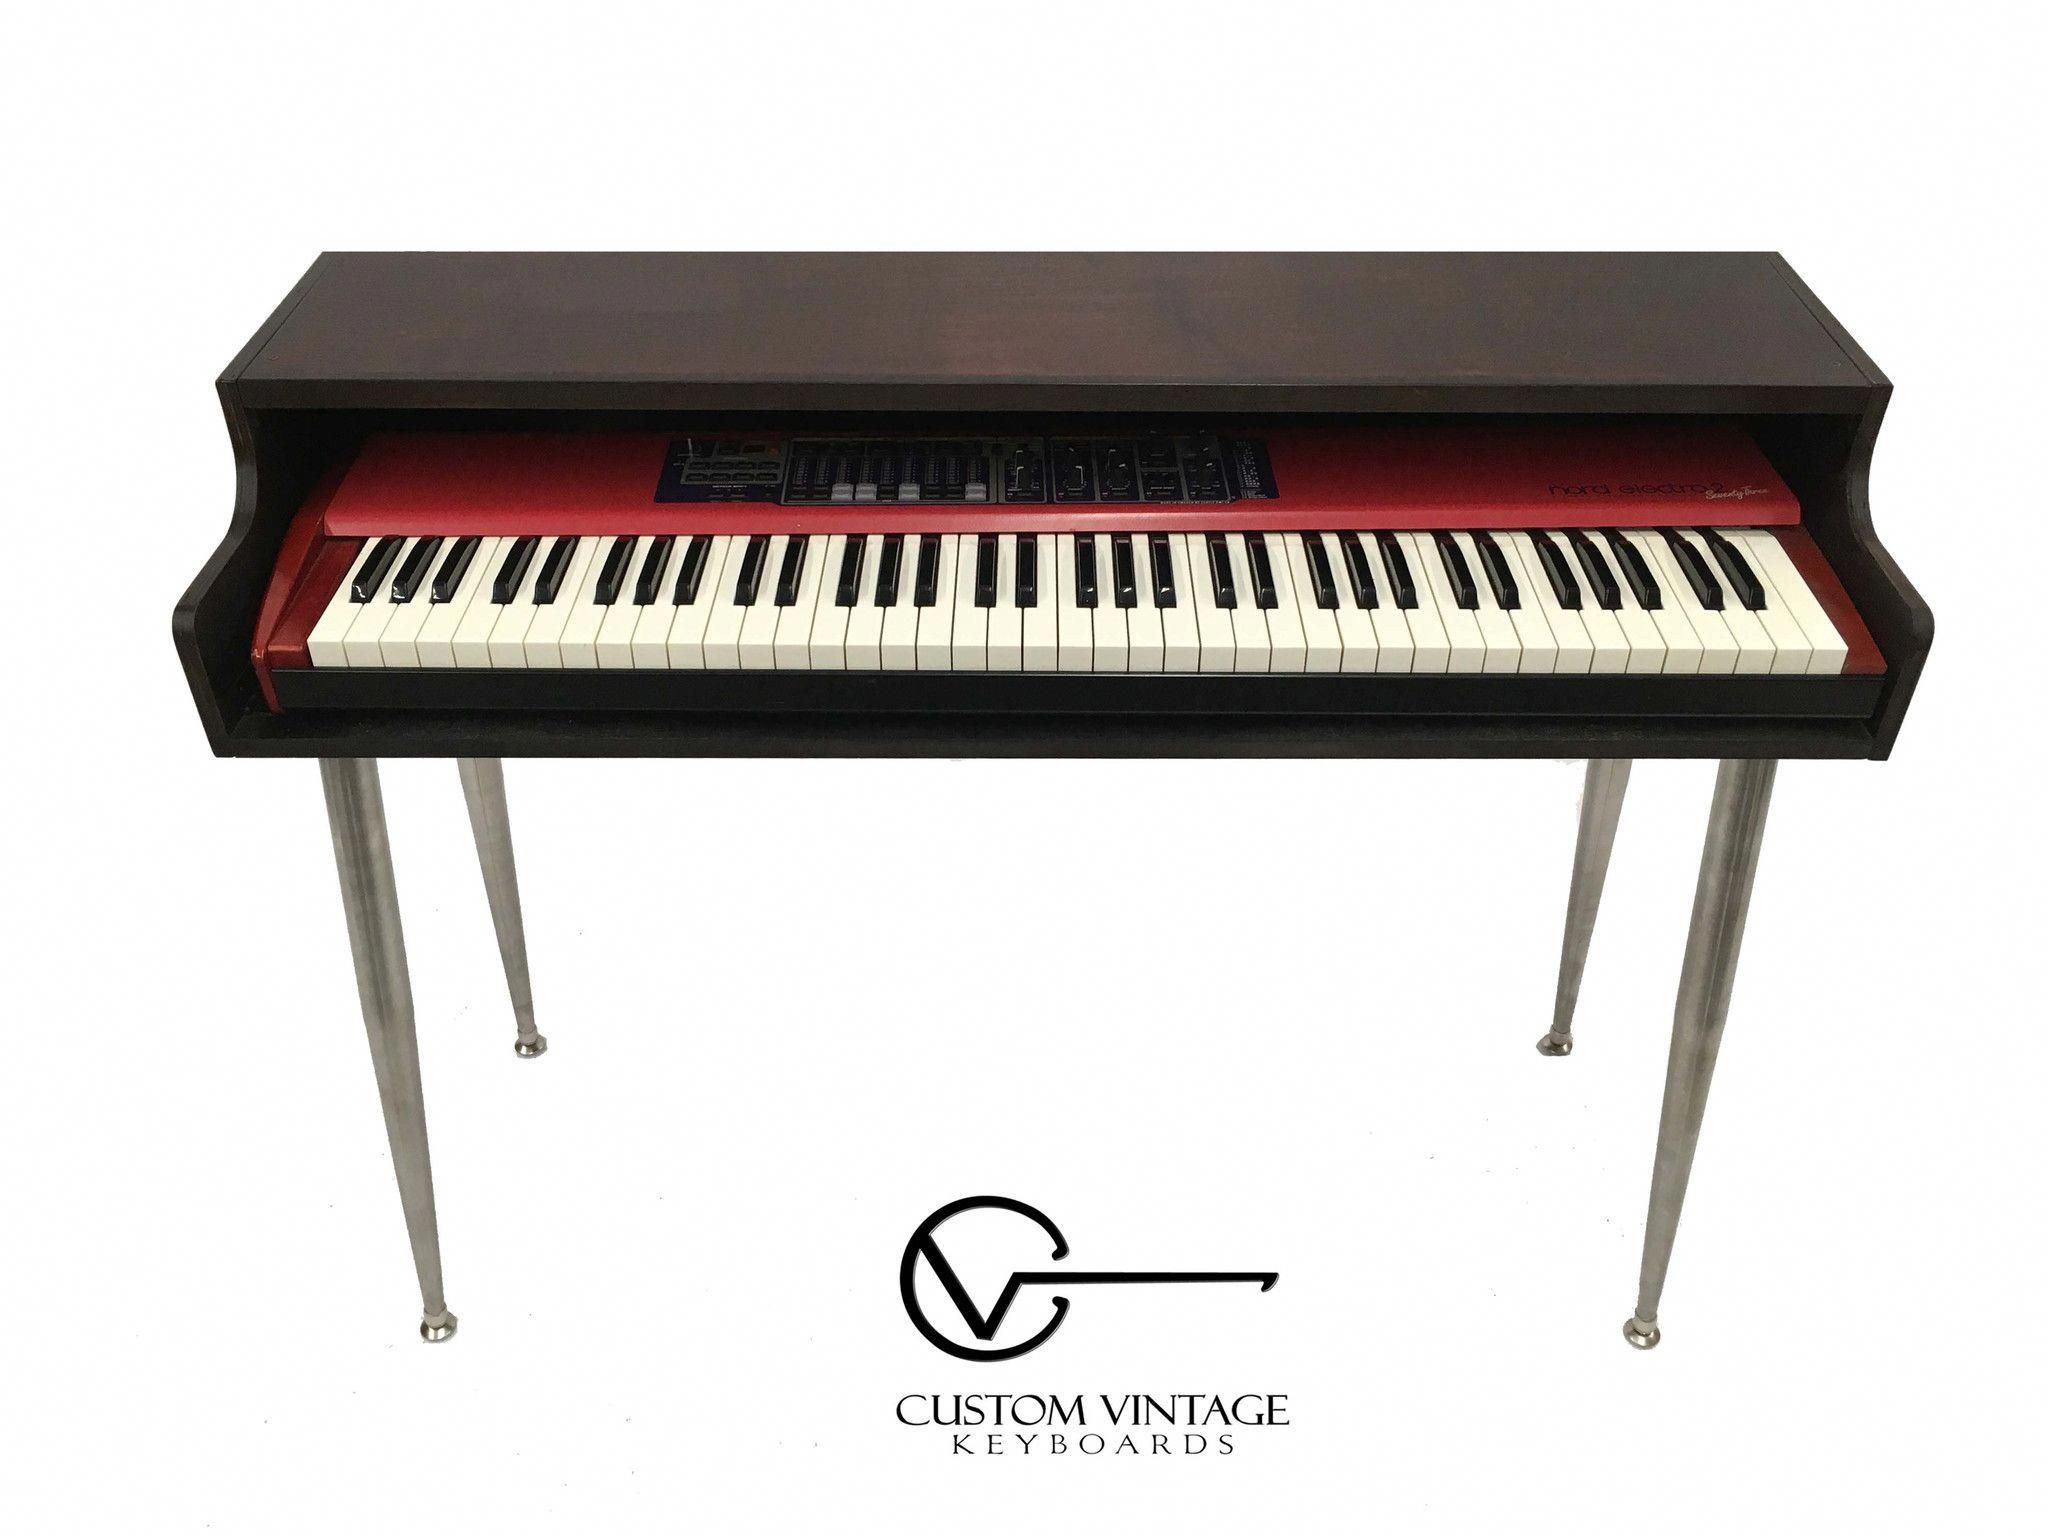 Custom Vintage Keyboards Piano Shell Is Meant To House Your Nord Or Controller For Enhanced Stage Presence Easily Collapsi Piano Keyboard Piano Electric Piano